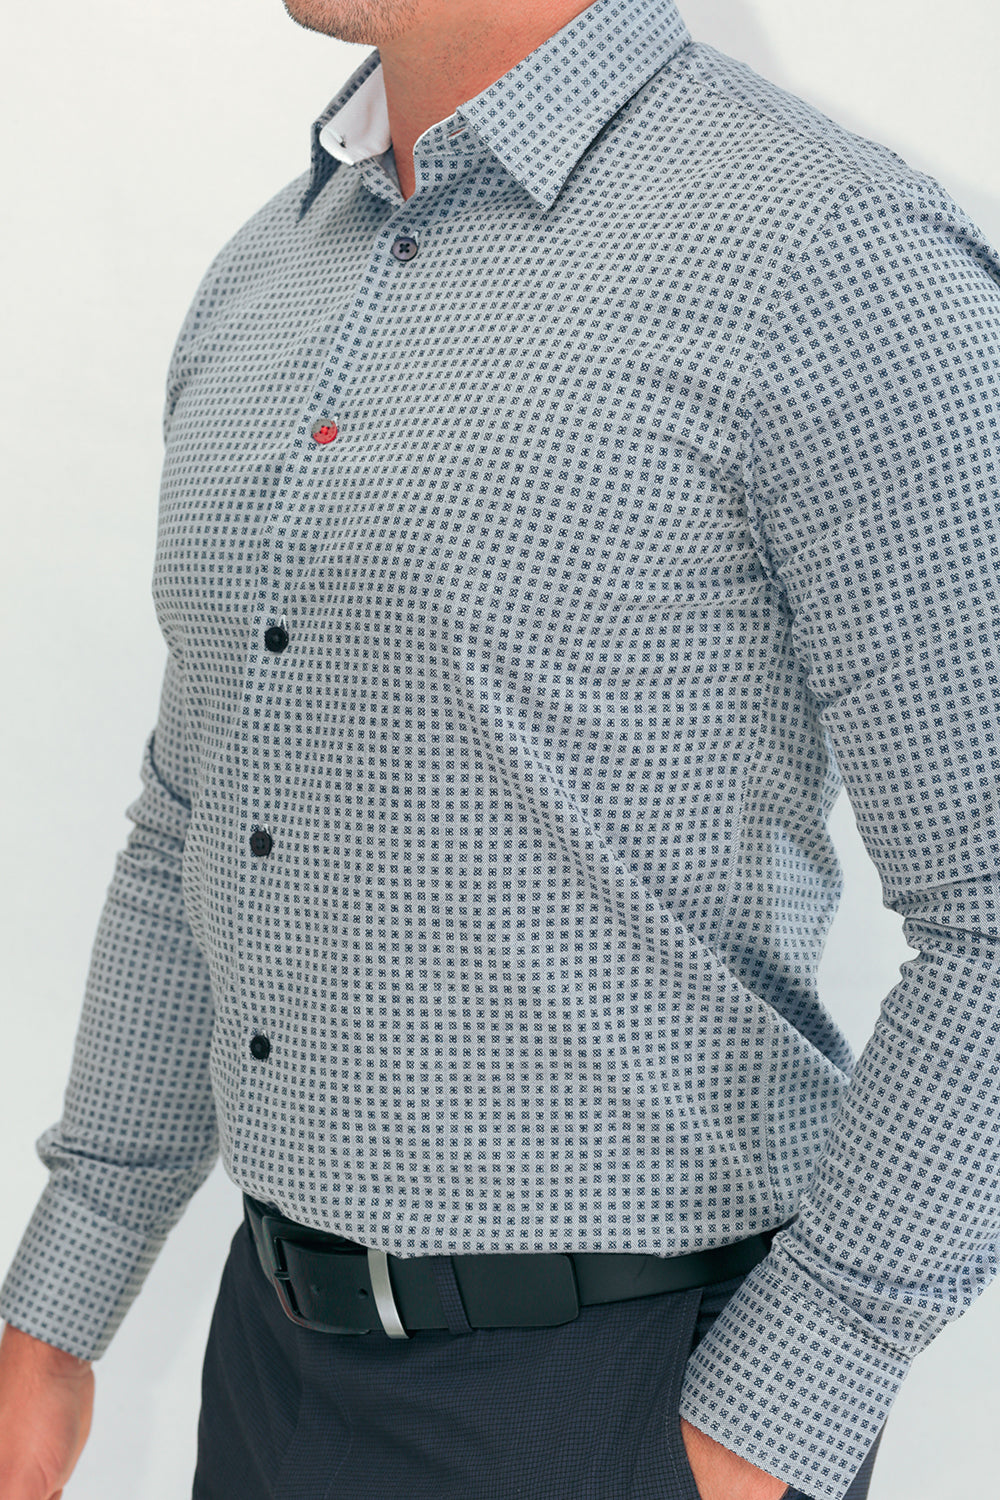 Melilla Microprint Shirts In Light Blue/Navy In Point Collar